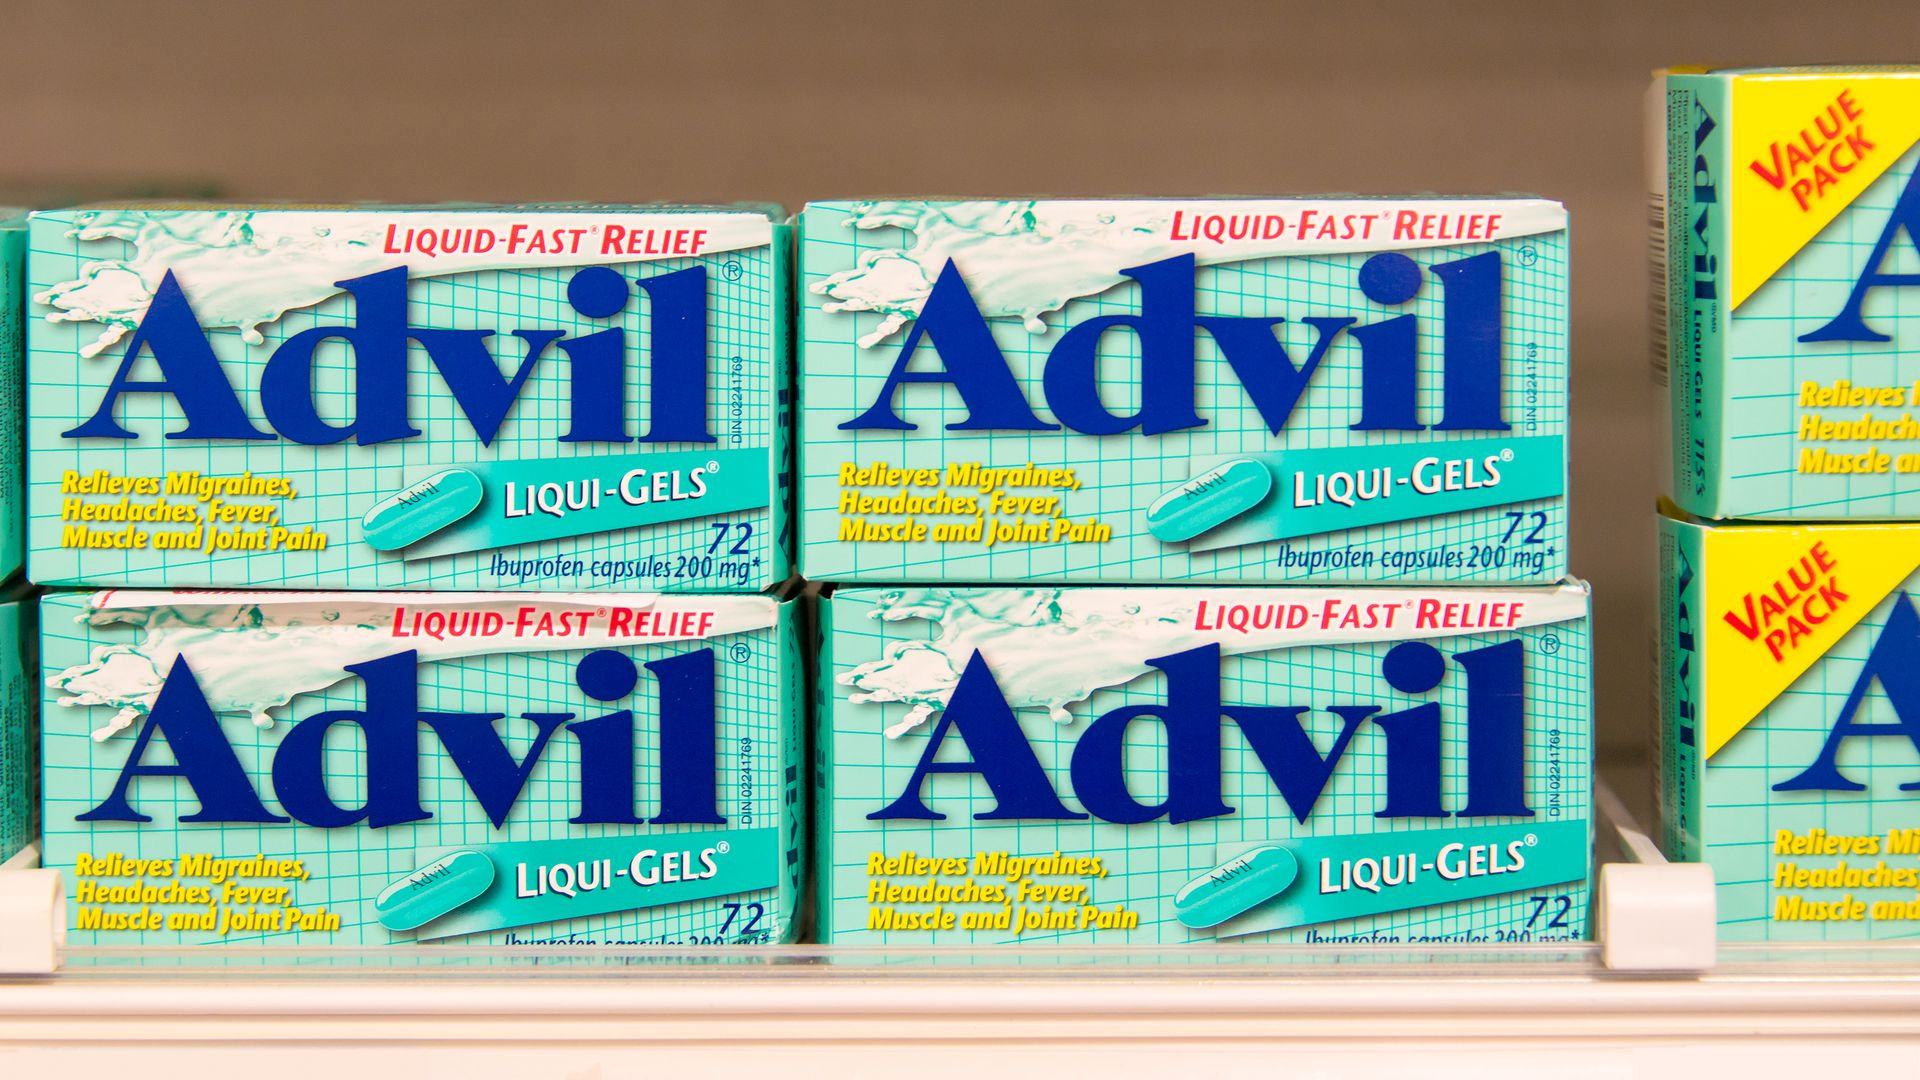 Advil packages sit on a shelf.